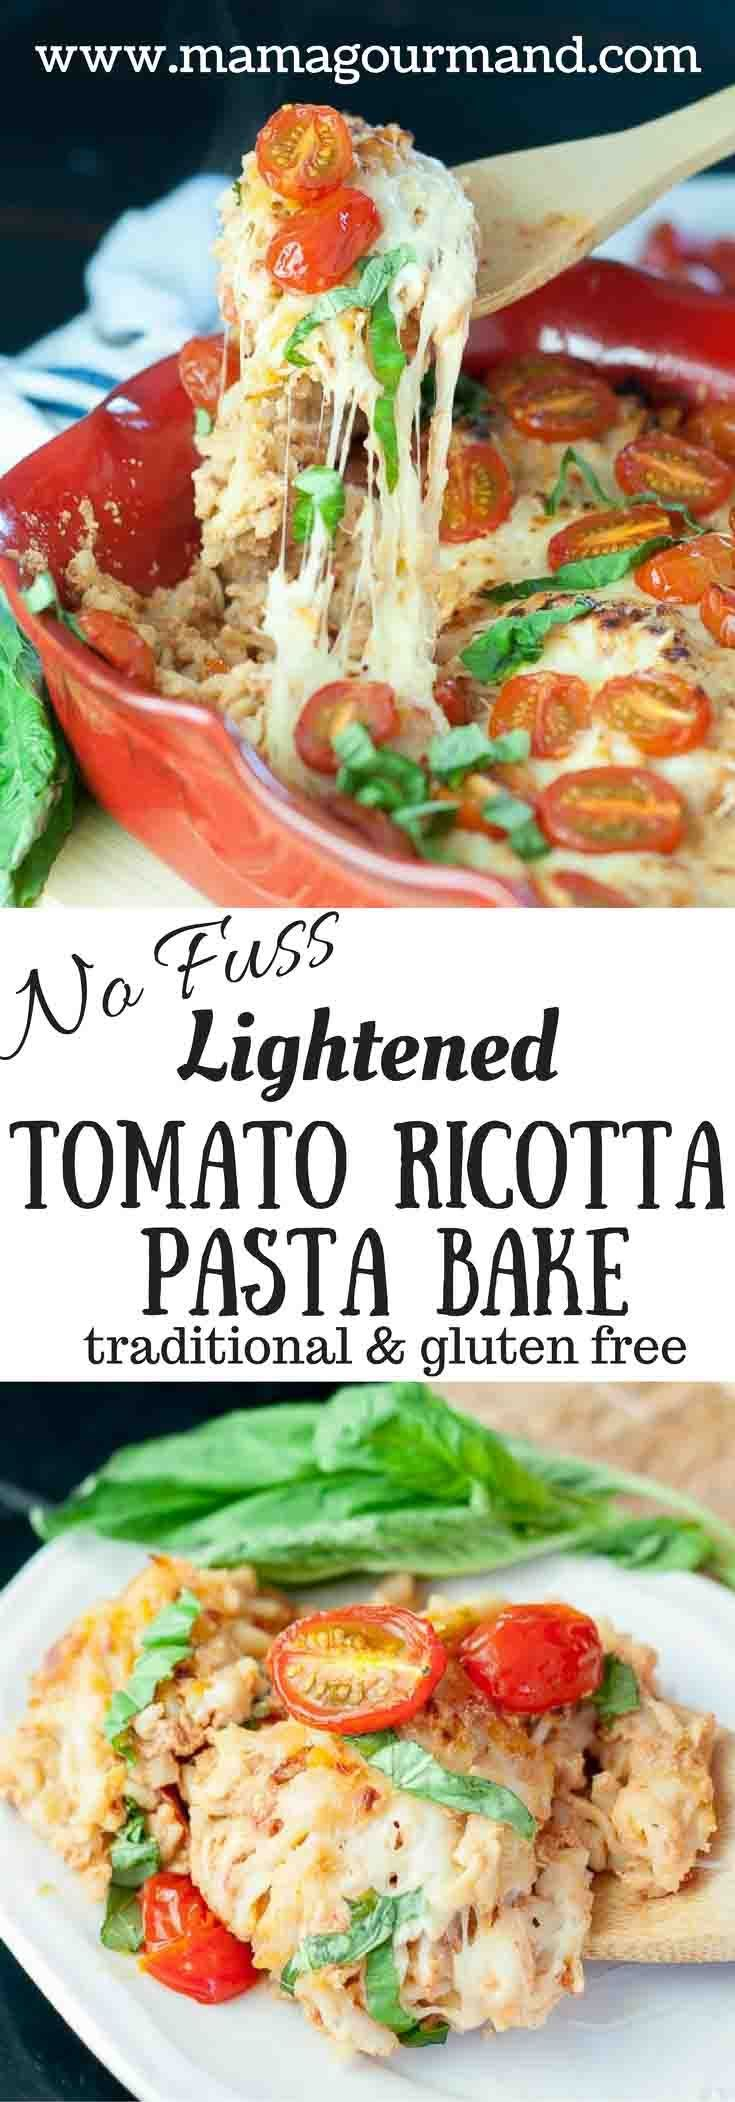 Lightened Tomato Ricotta Pasta Bake is tossed in a creamy tomato sauce, topped with baked mozzarella, roasted grape tomatoes, and fresh basil. Healthy and delicious! http://www.mamagourmand.com via @mamagourmand